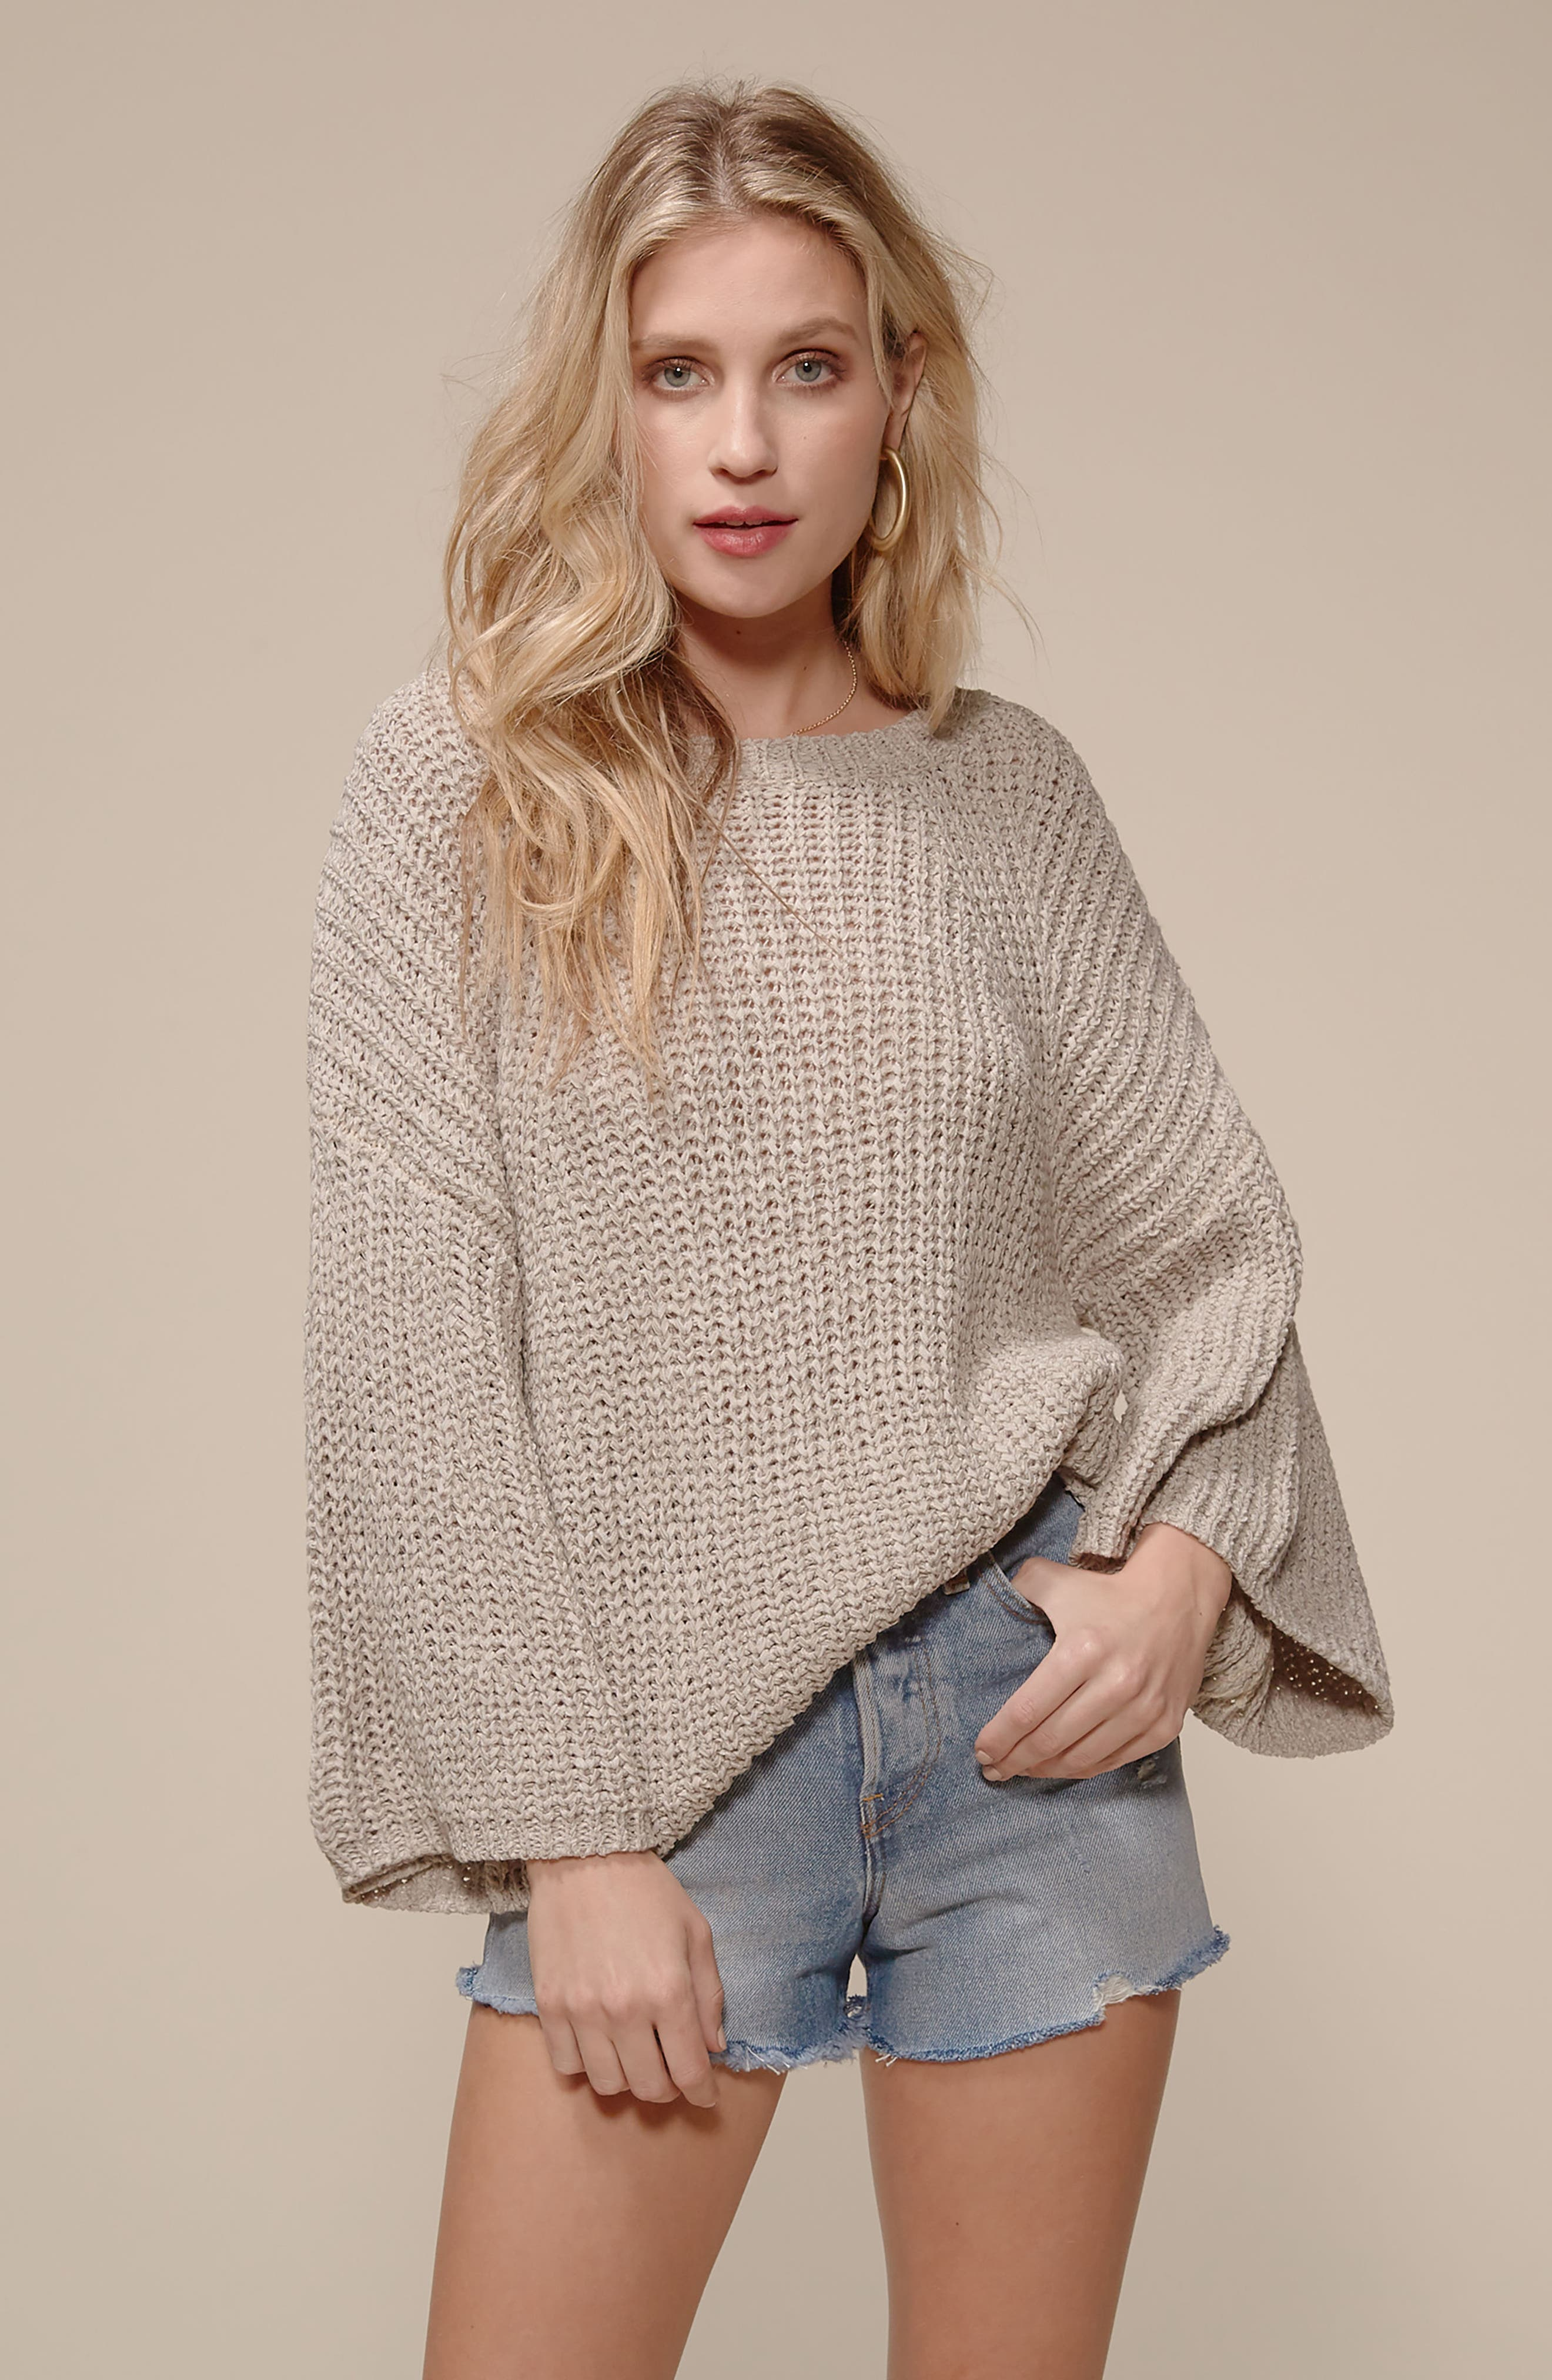 Bell Sleeve Sweater,                             Alternate thumbnail 8, color,                             280